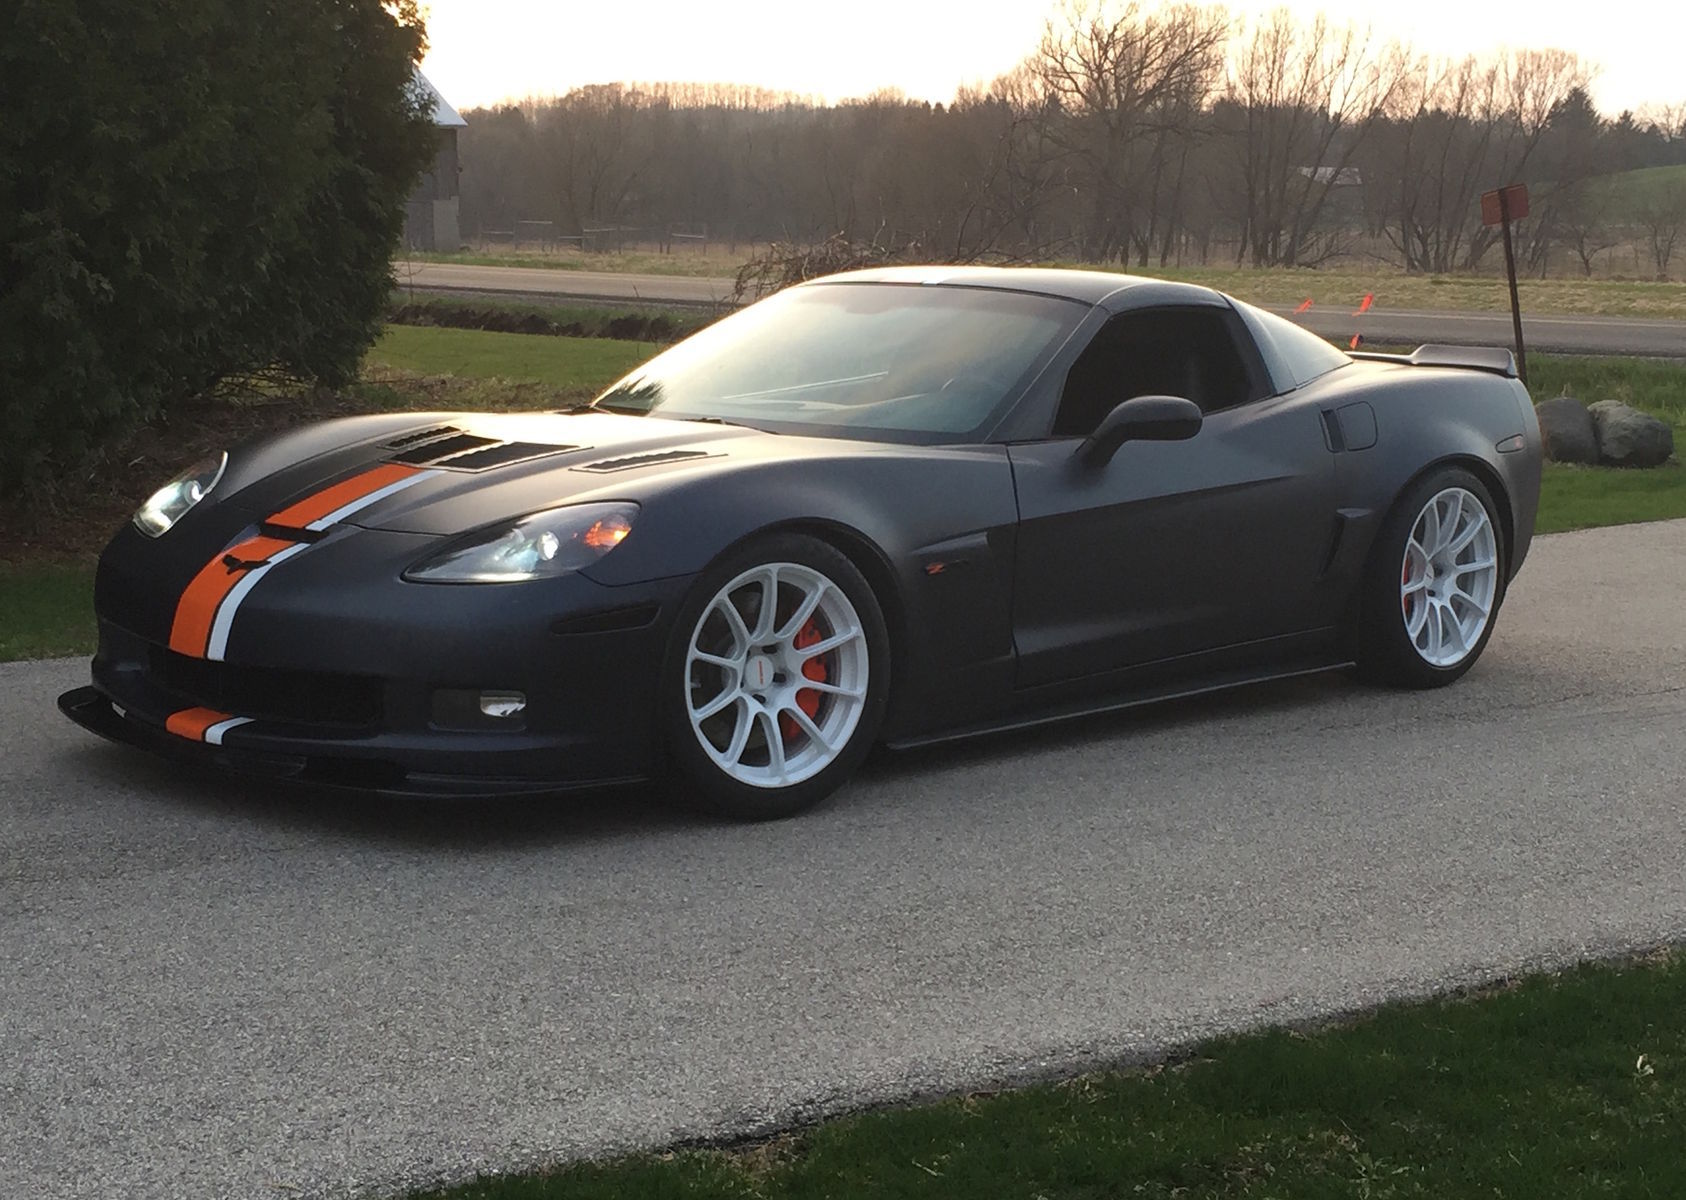 2008 Chevrolet Corvette Z06 | Randy Johnson's D&Z Customs C6 Corvette Z06 on Forgeline One Piece Forged Monoblock GTD1 5-Lug Wheels